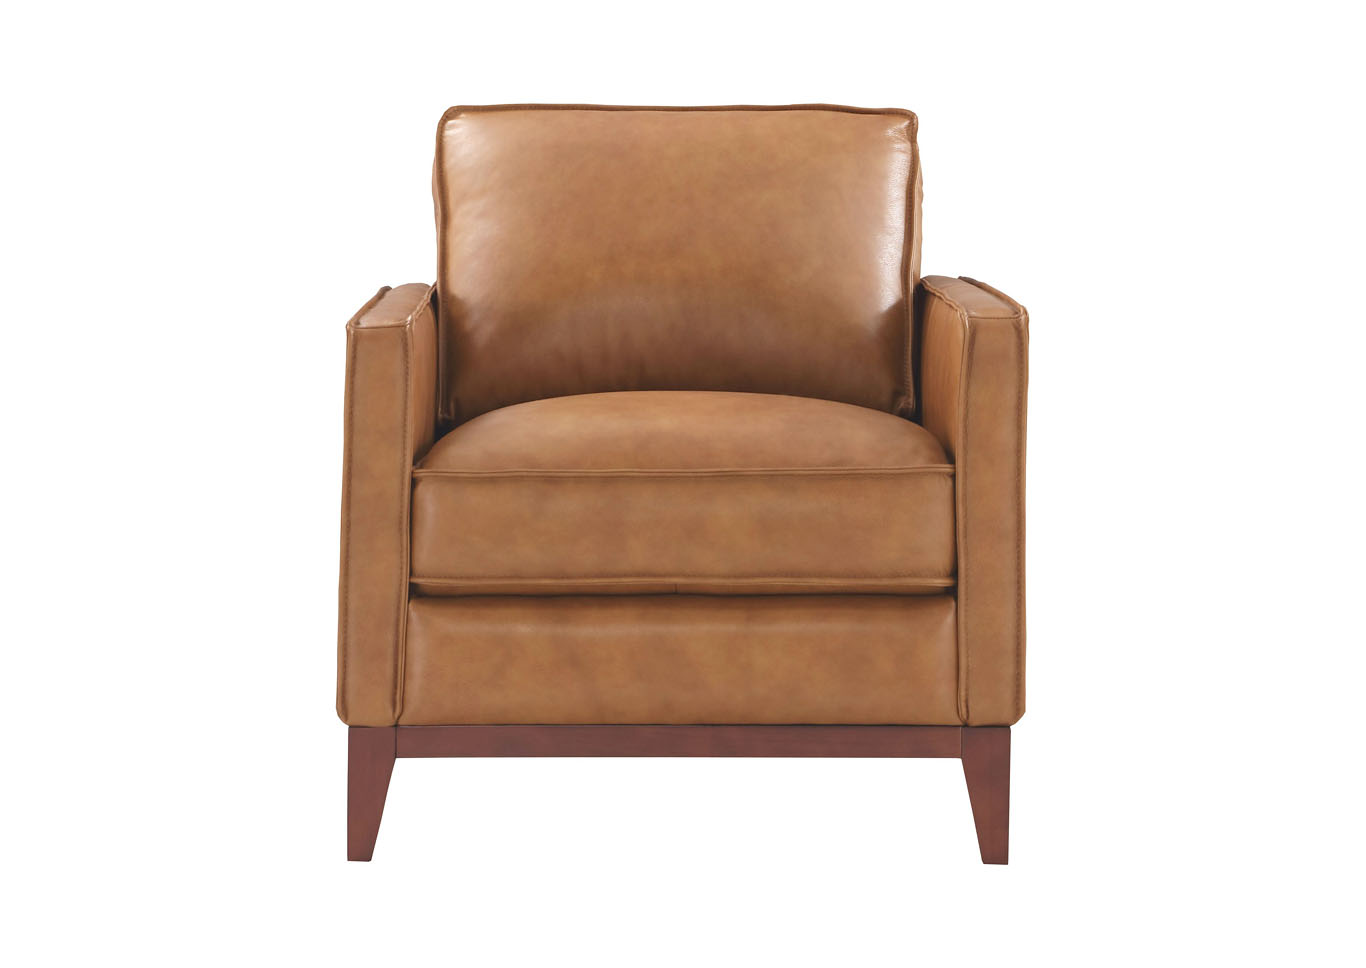 Newport Top Grain Leather Sofa and Chair,Instore